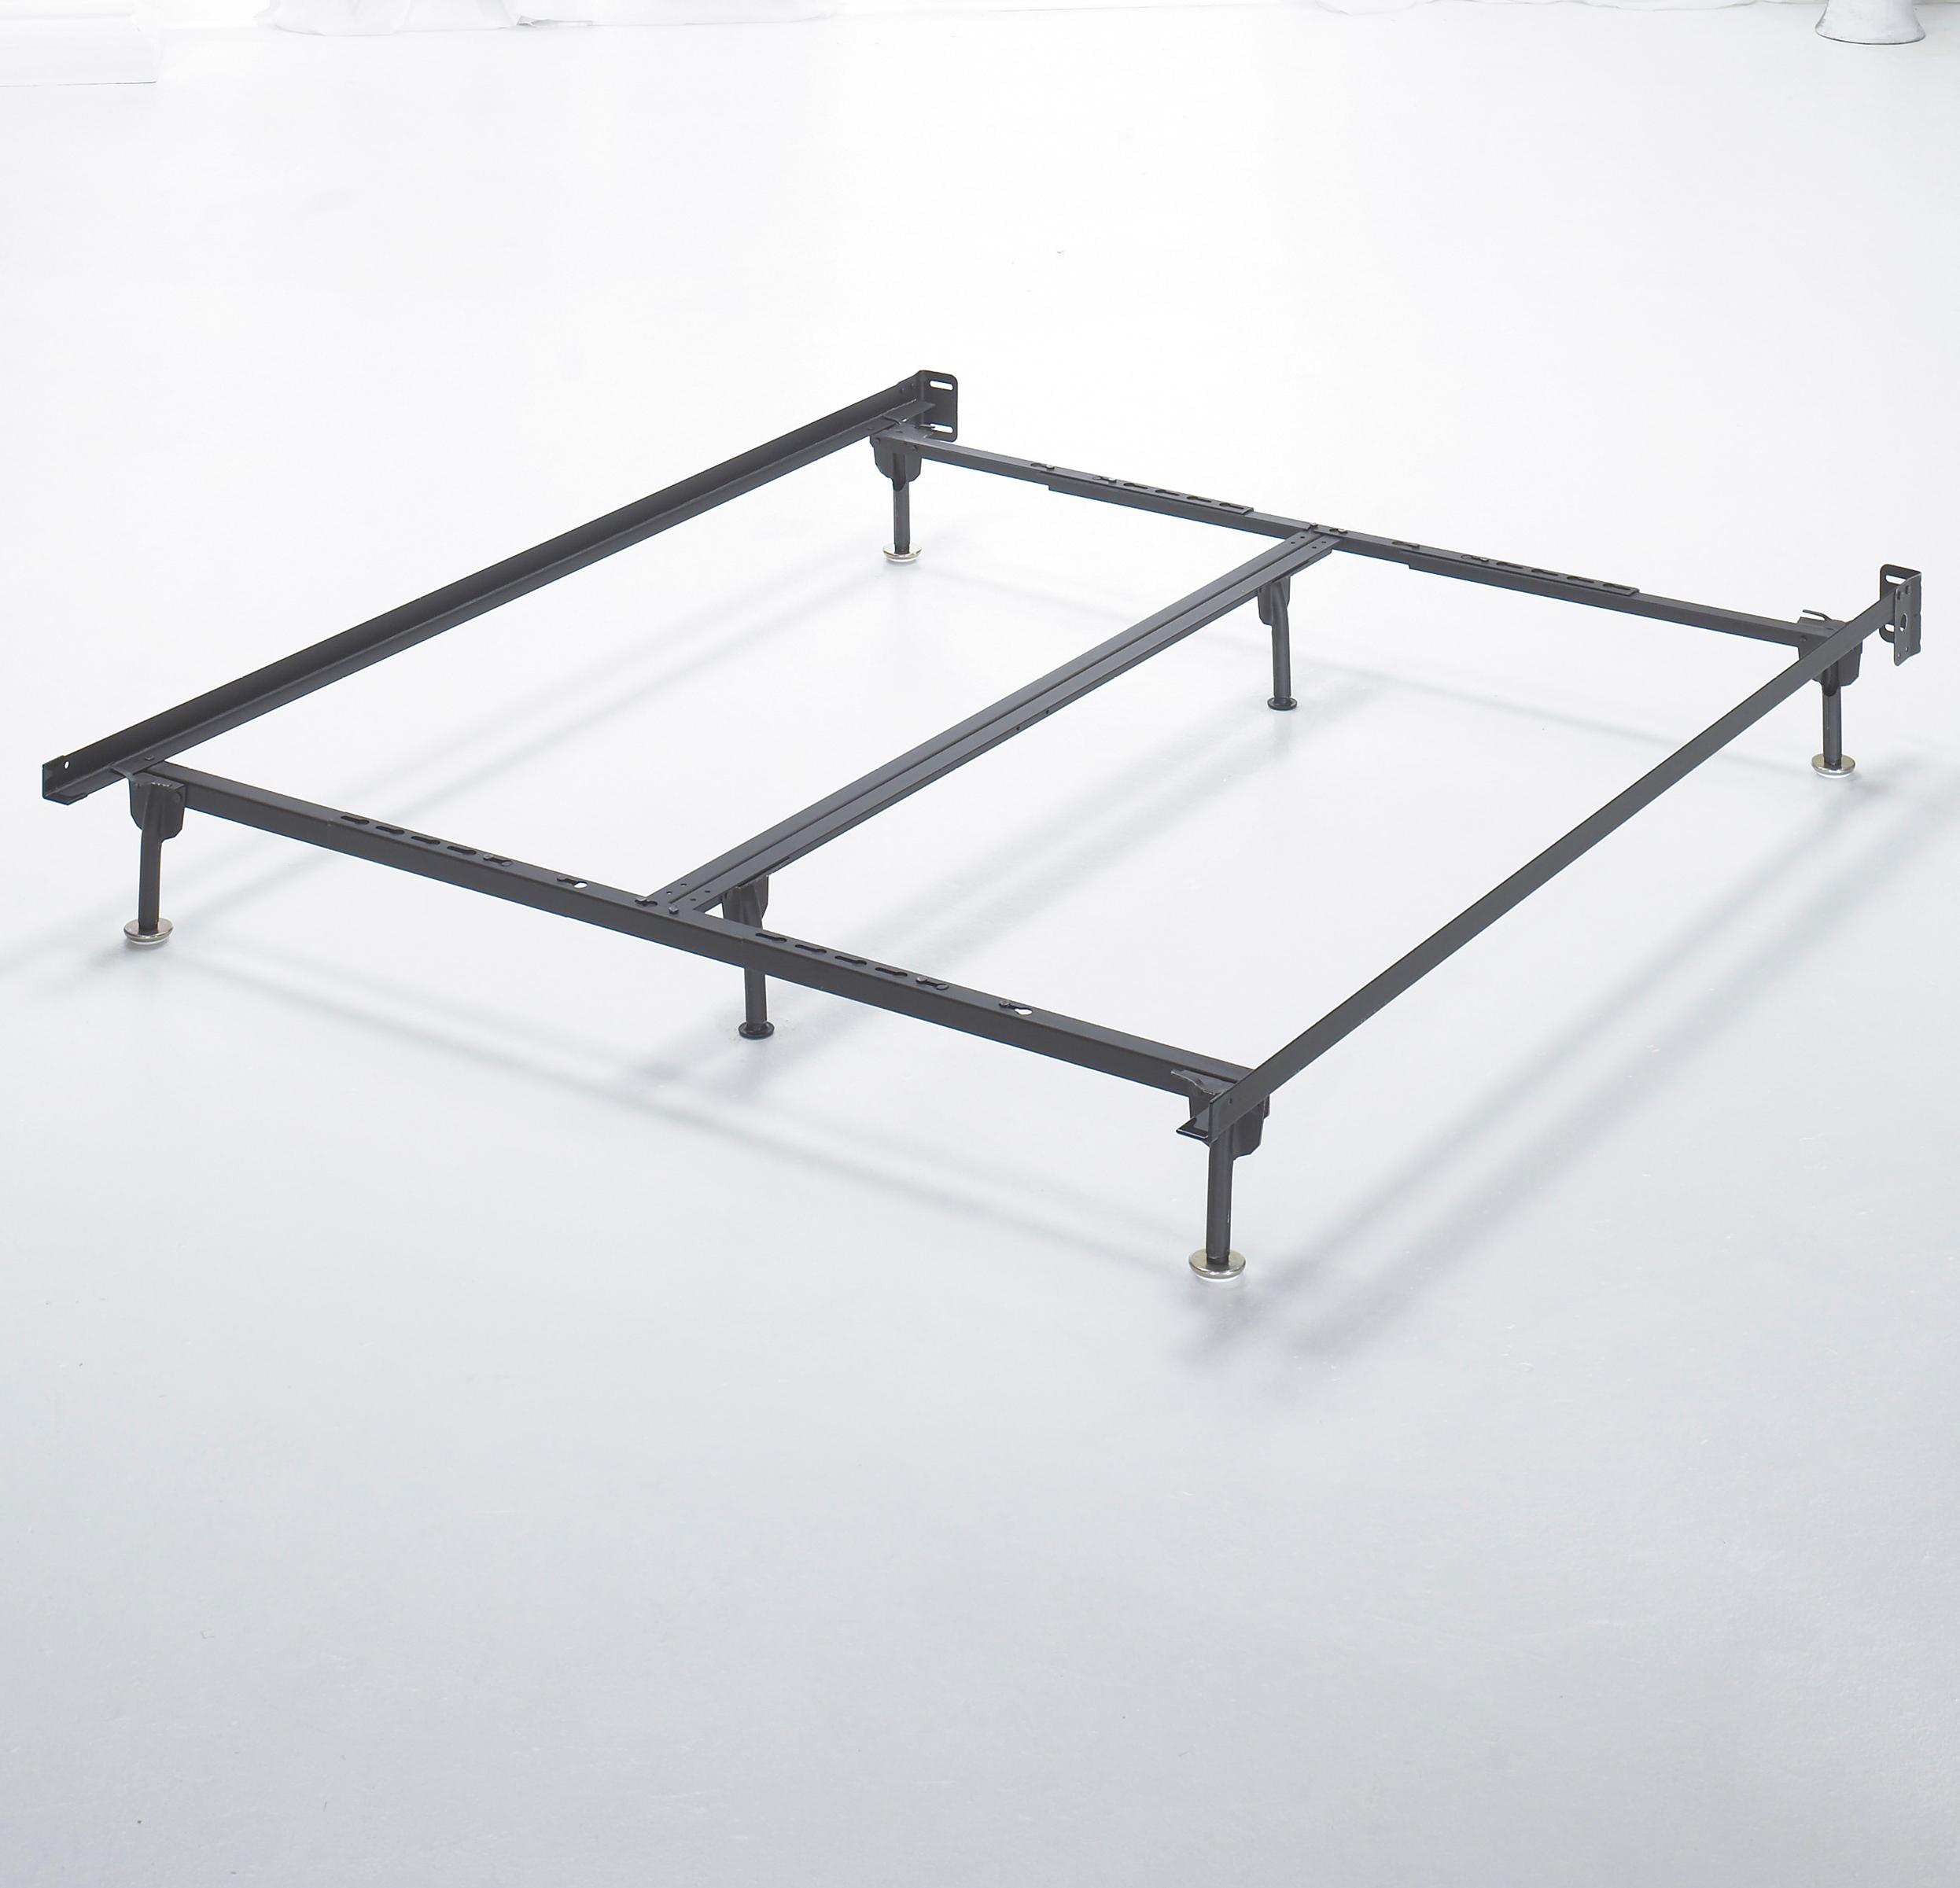 Signature Design by Ashley Frames and Rails Q/K/CK Bolt on Bed Frame - Item Number: B100-66